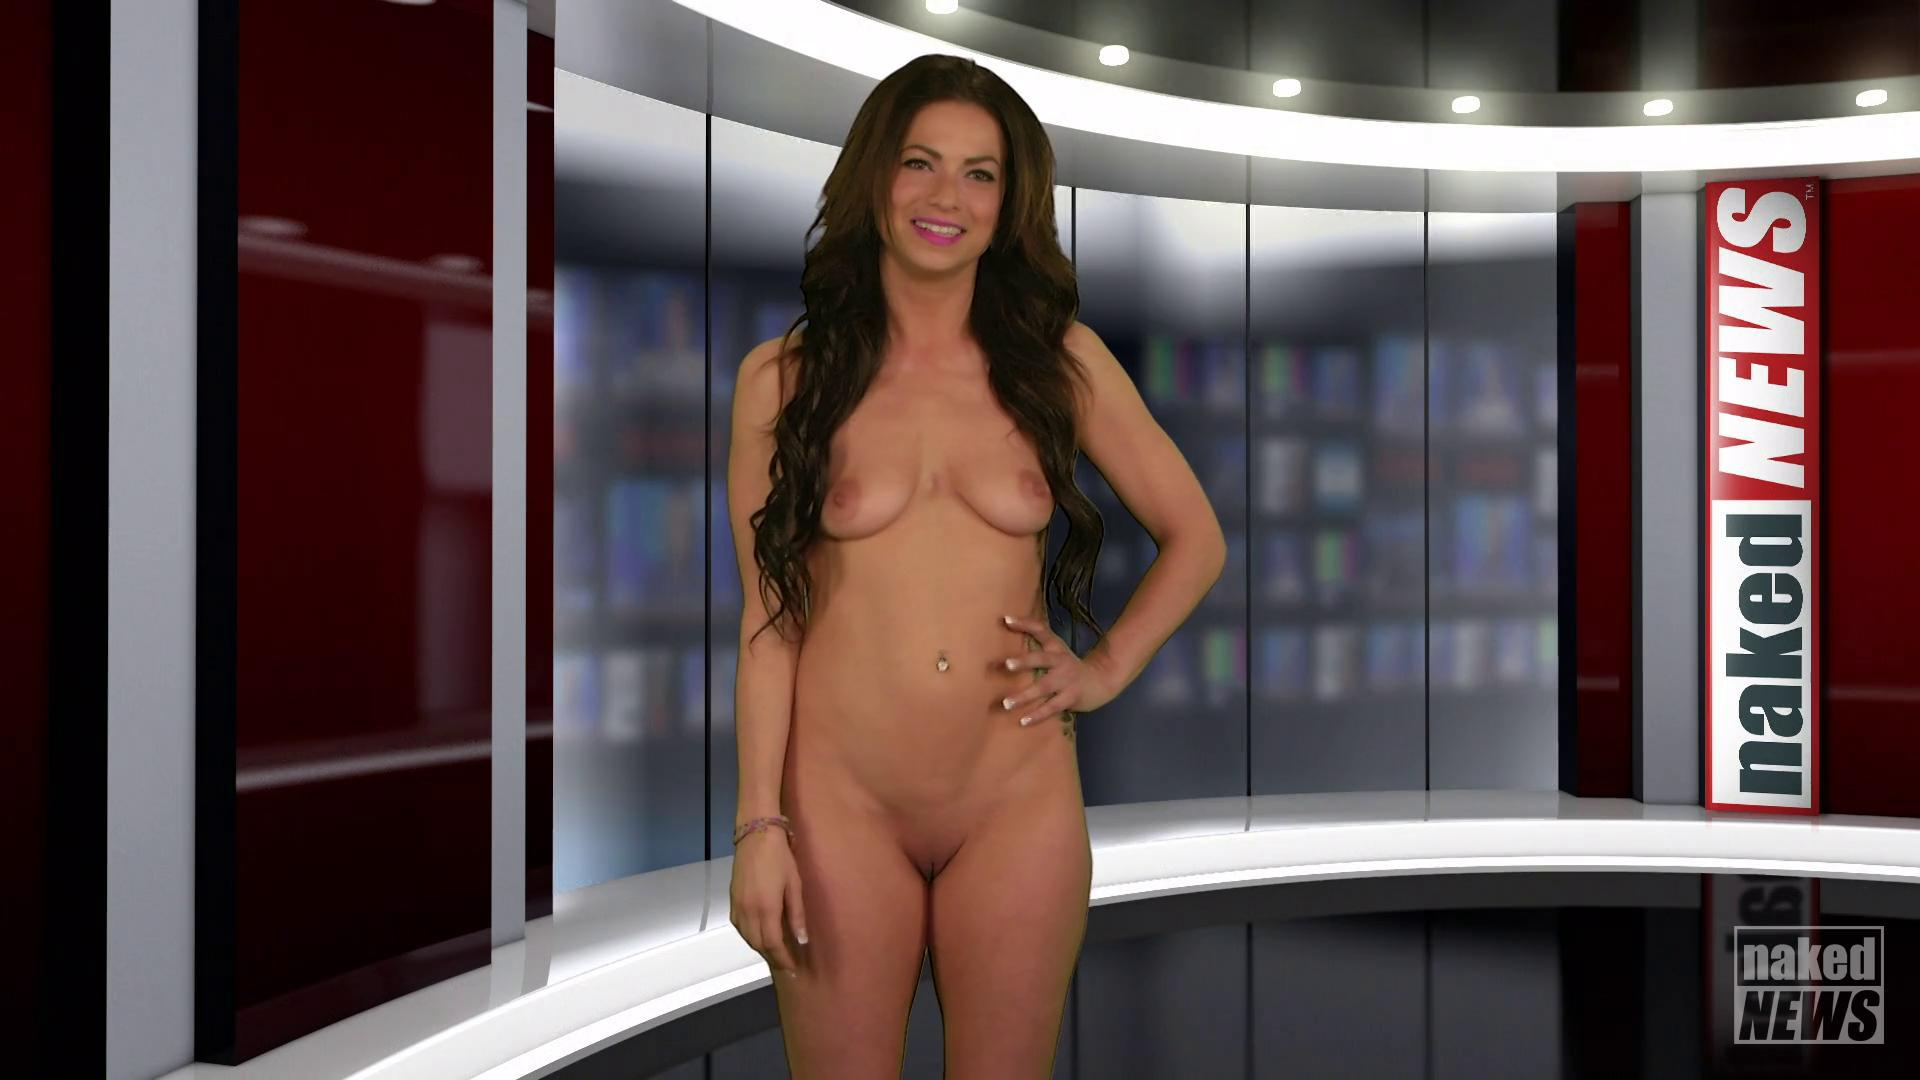 Naked News Anchors Porn Review By Ryan